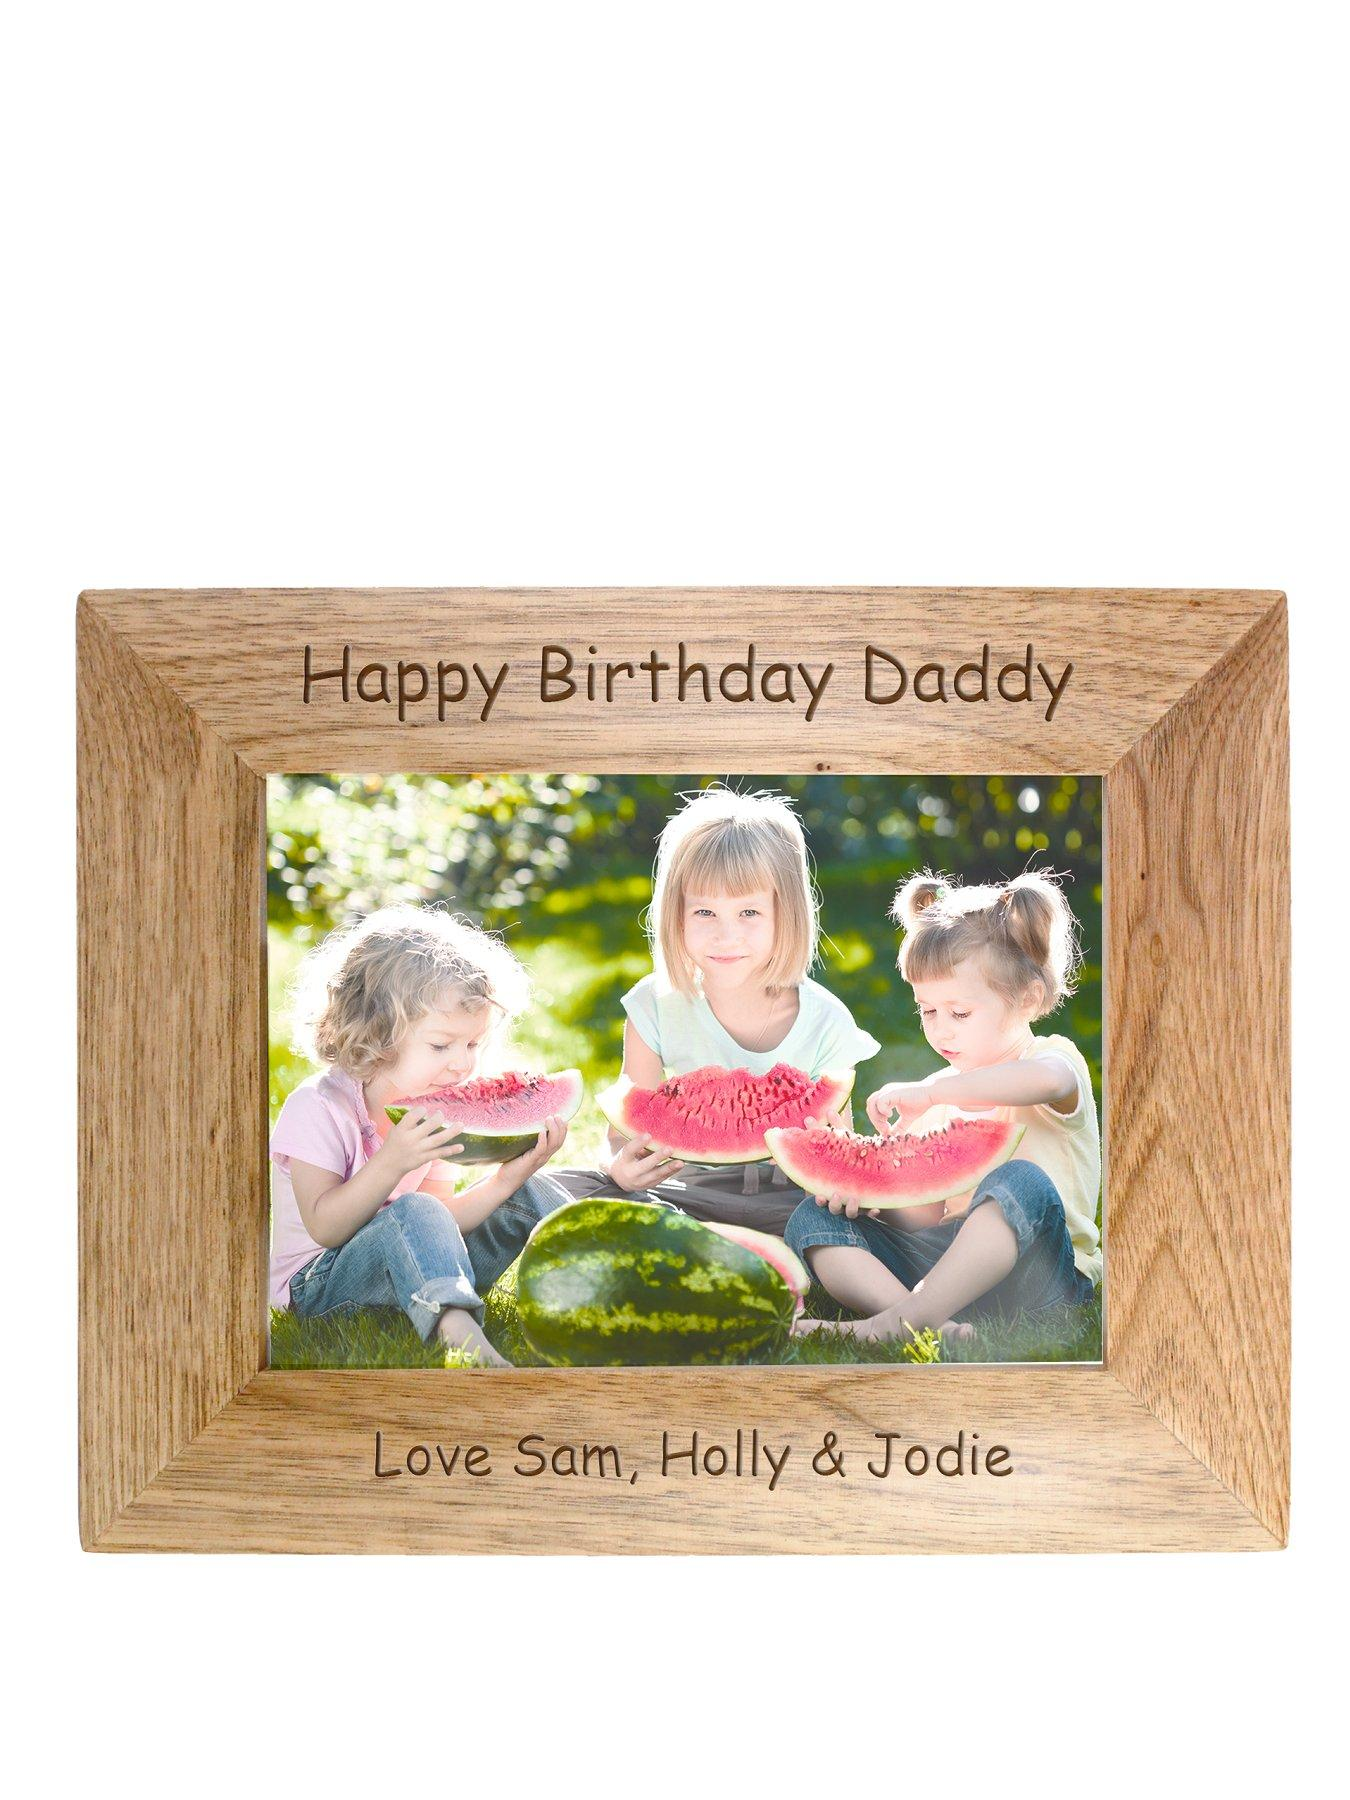 Personalised 6x4 inch Wooden Frame